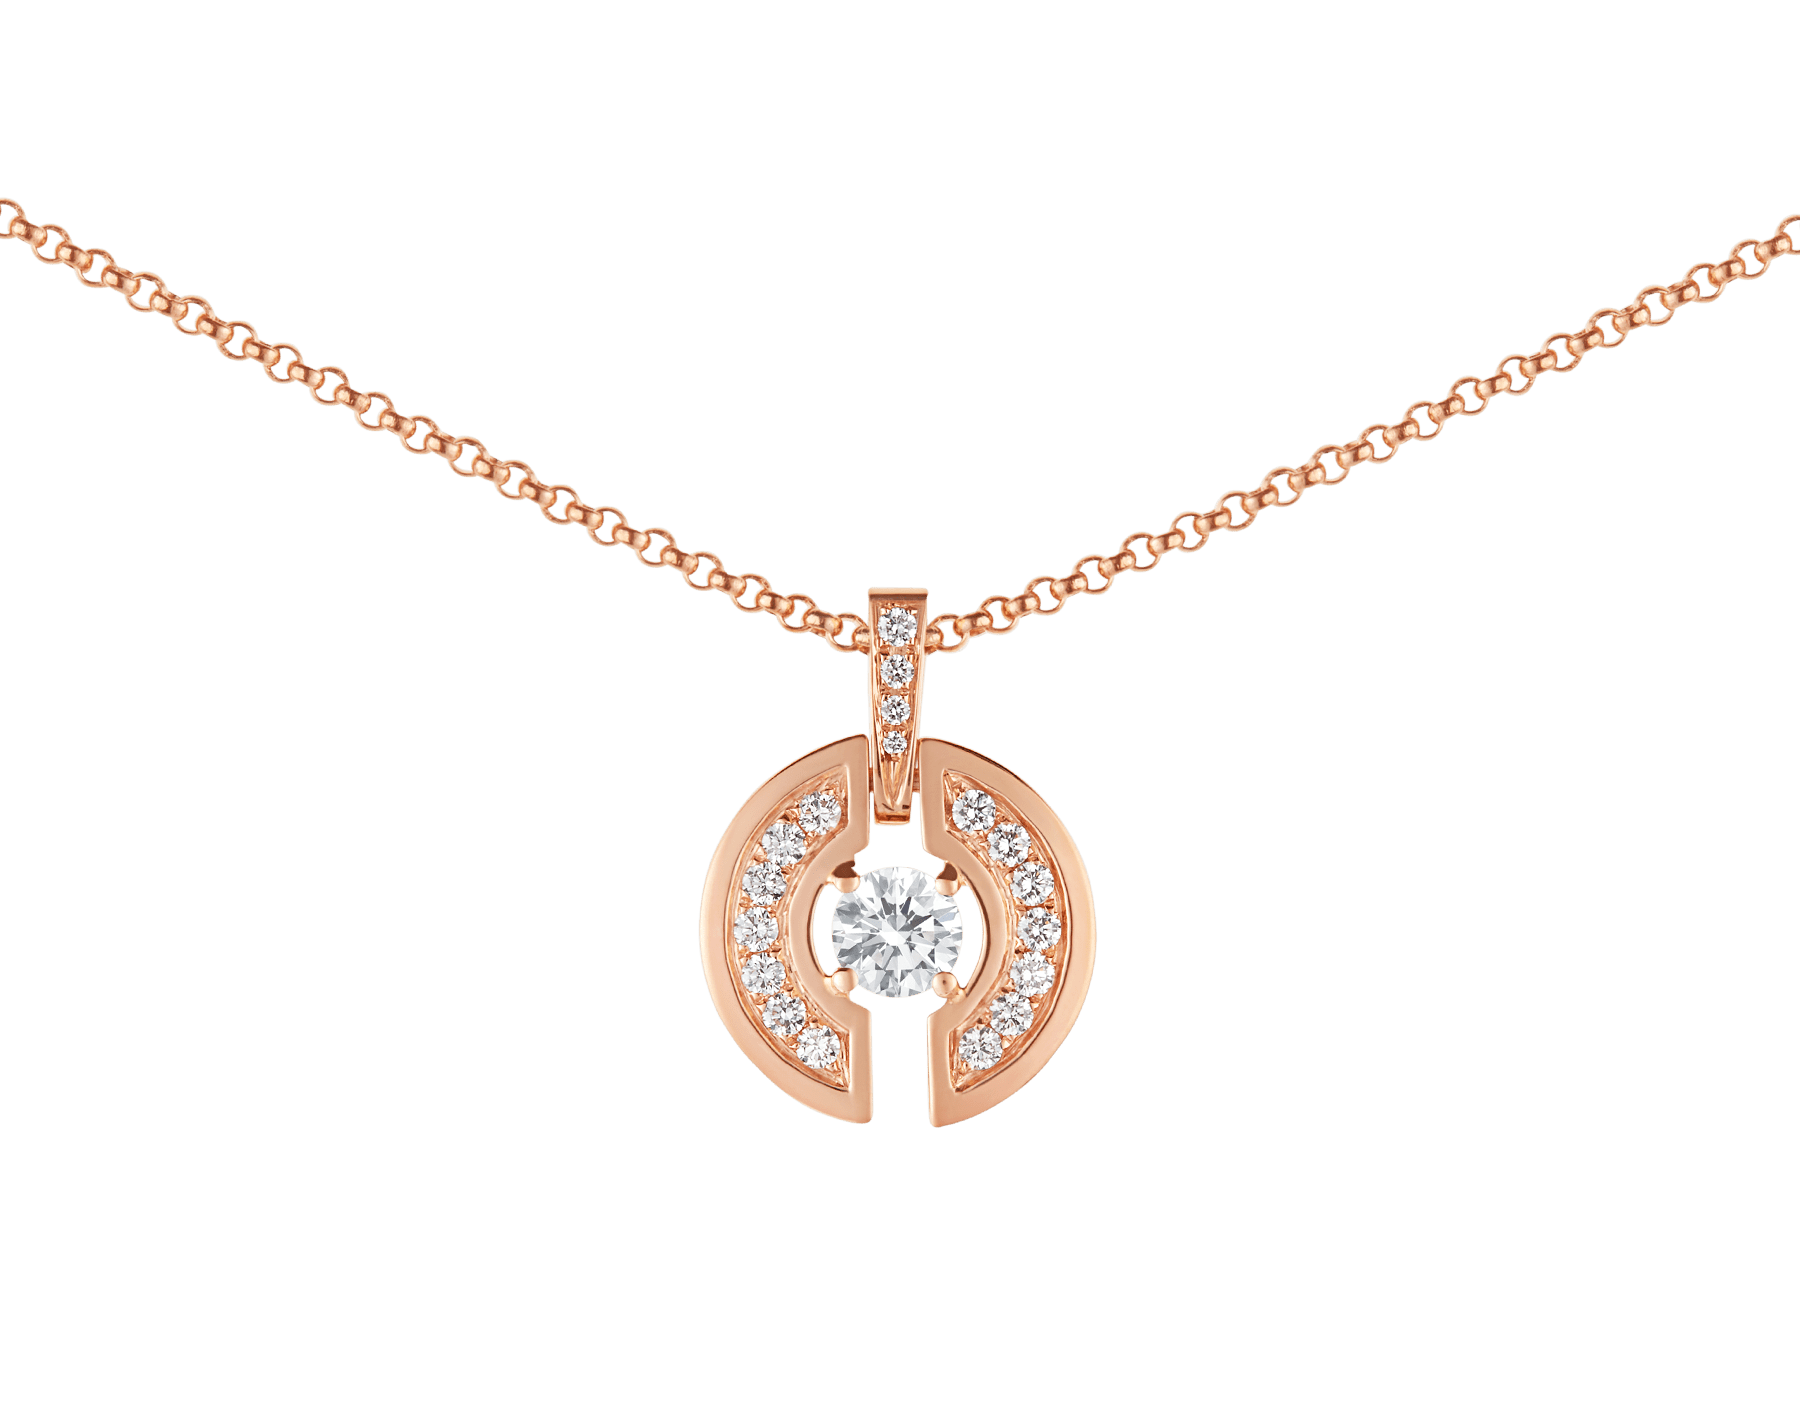 Parentesi necklace with 18 kt rose gold chain and pendant, set with a central diamond and pavé diamonds. 354606 image 3